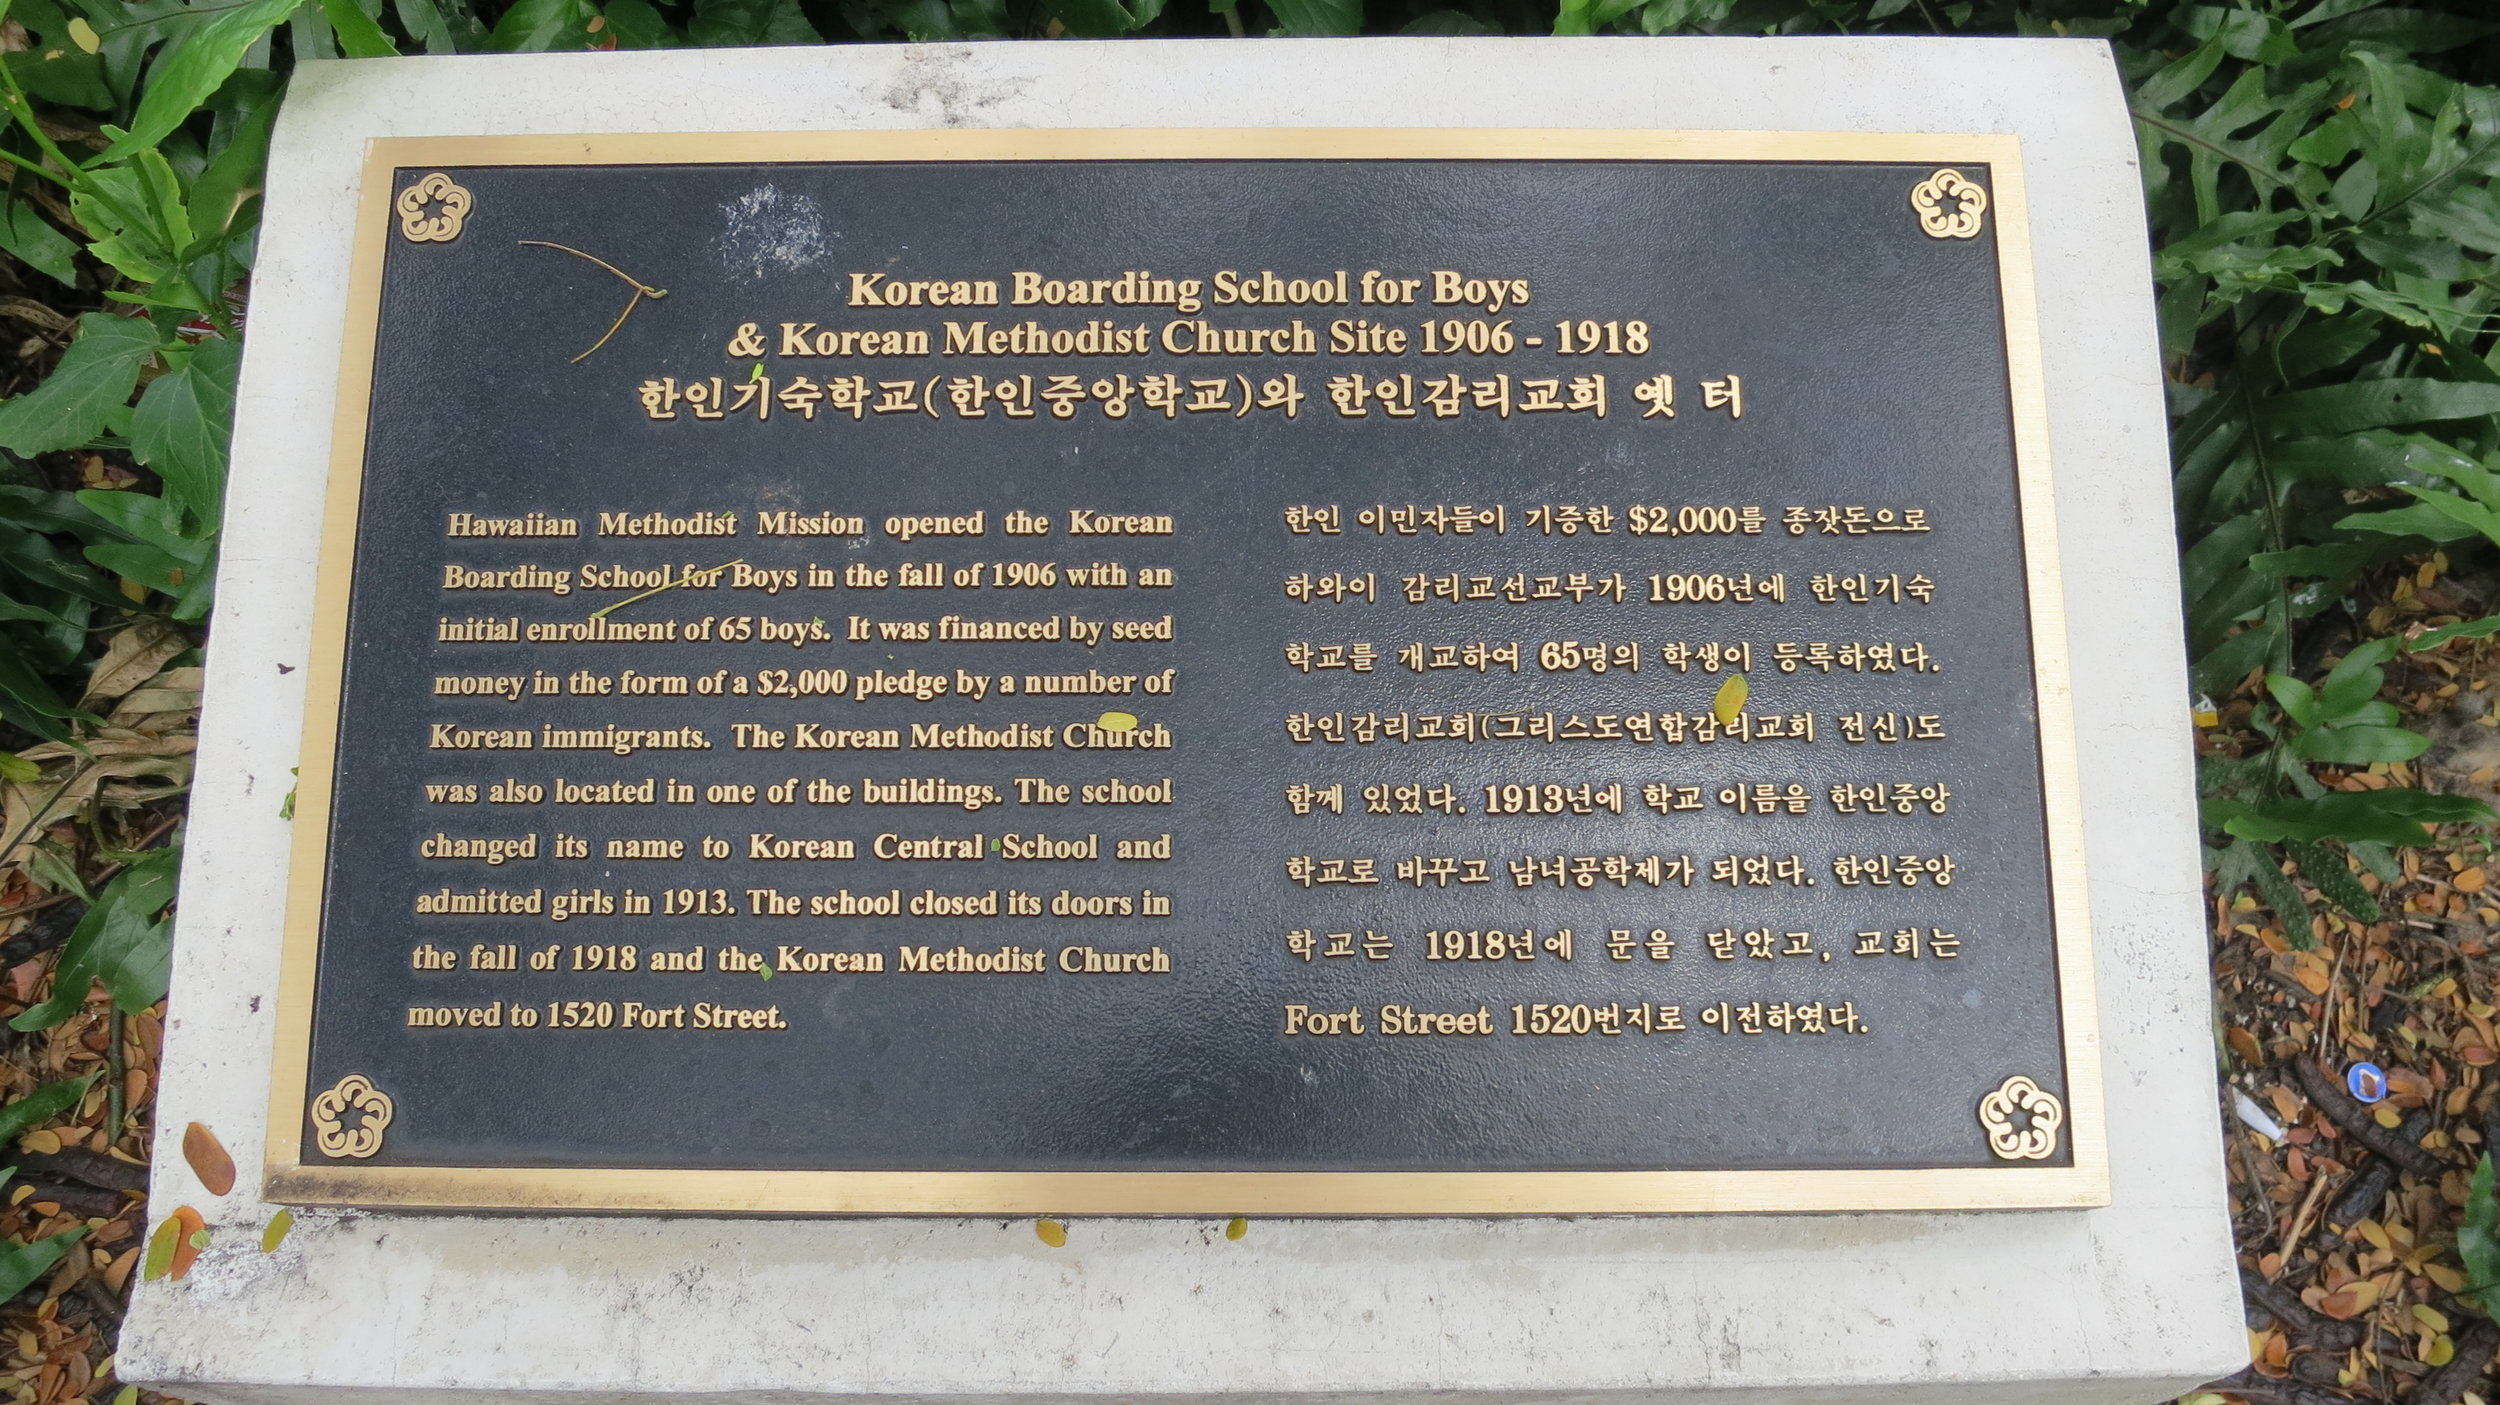 Korean Boarding School for Boys, Kalanimoku Bldg.<br>Honolulu, Hawaii